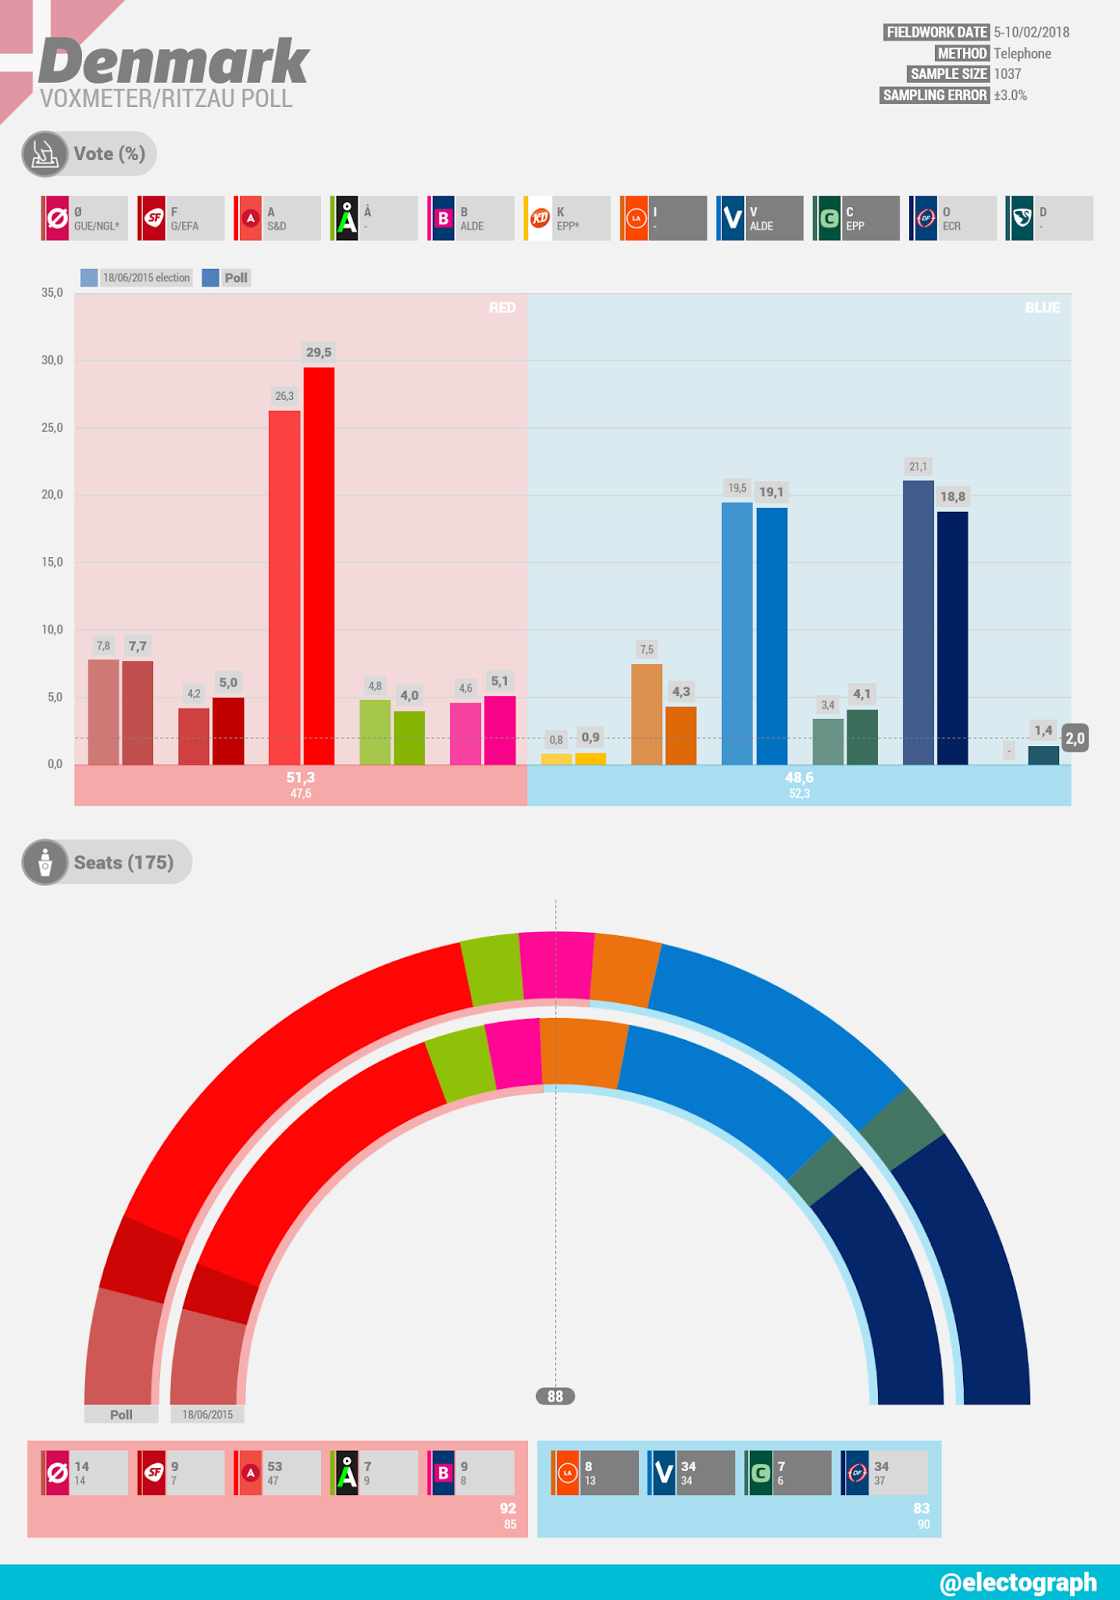 DENMARK Voxmeter poll chart for Ritzau, 11 February 2018